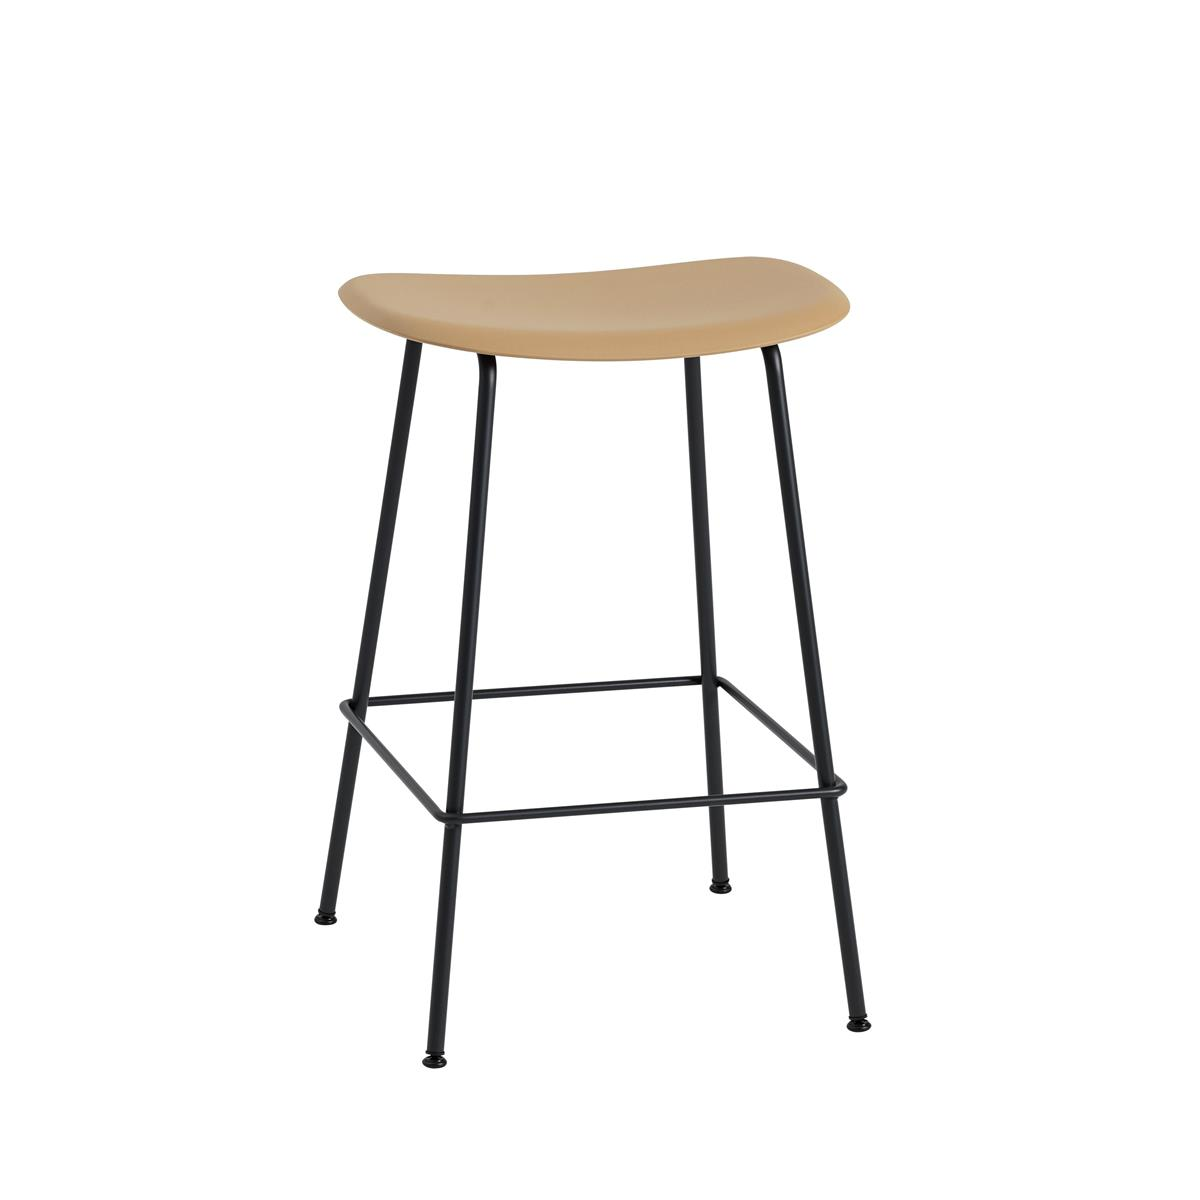 Fiber Bar Stool / Tube Base H65 - Ochre & Black